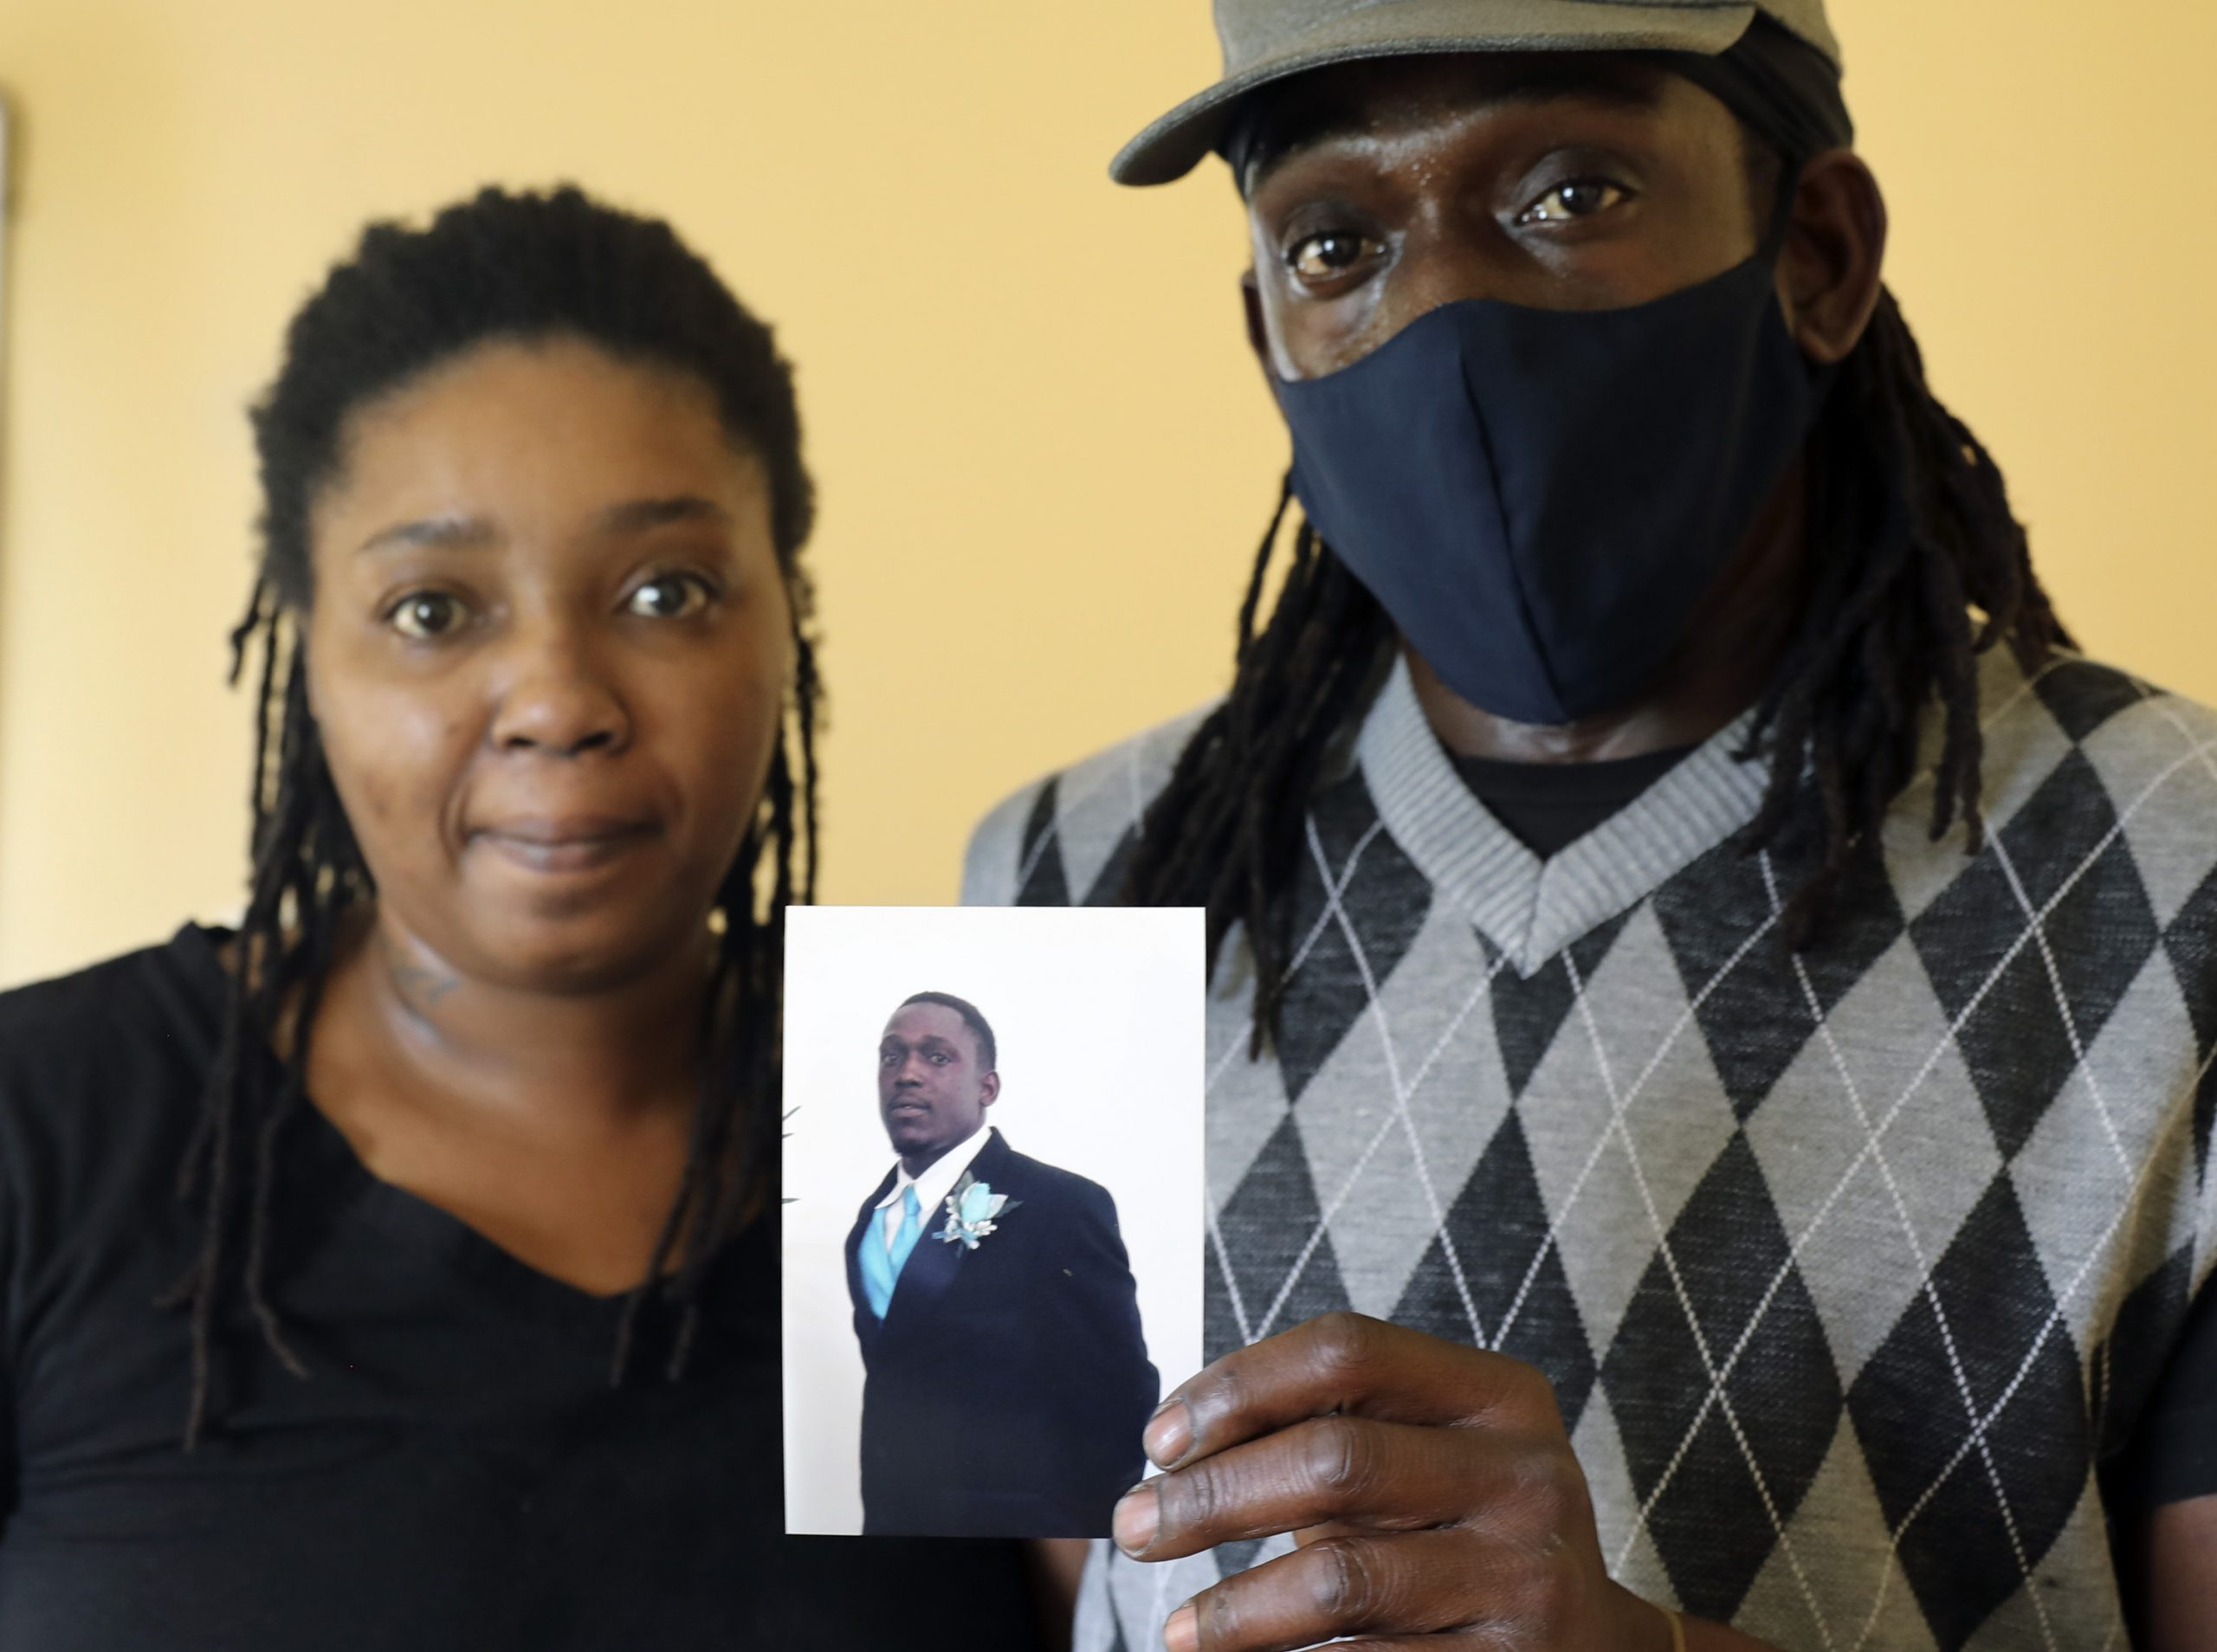 Reginald Jackson holds a photo of himself when he was younger, while standing with his wife, Ciara Jackson, in their Lakeland, Fla., home .